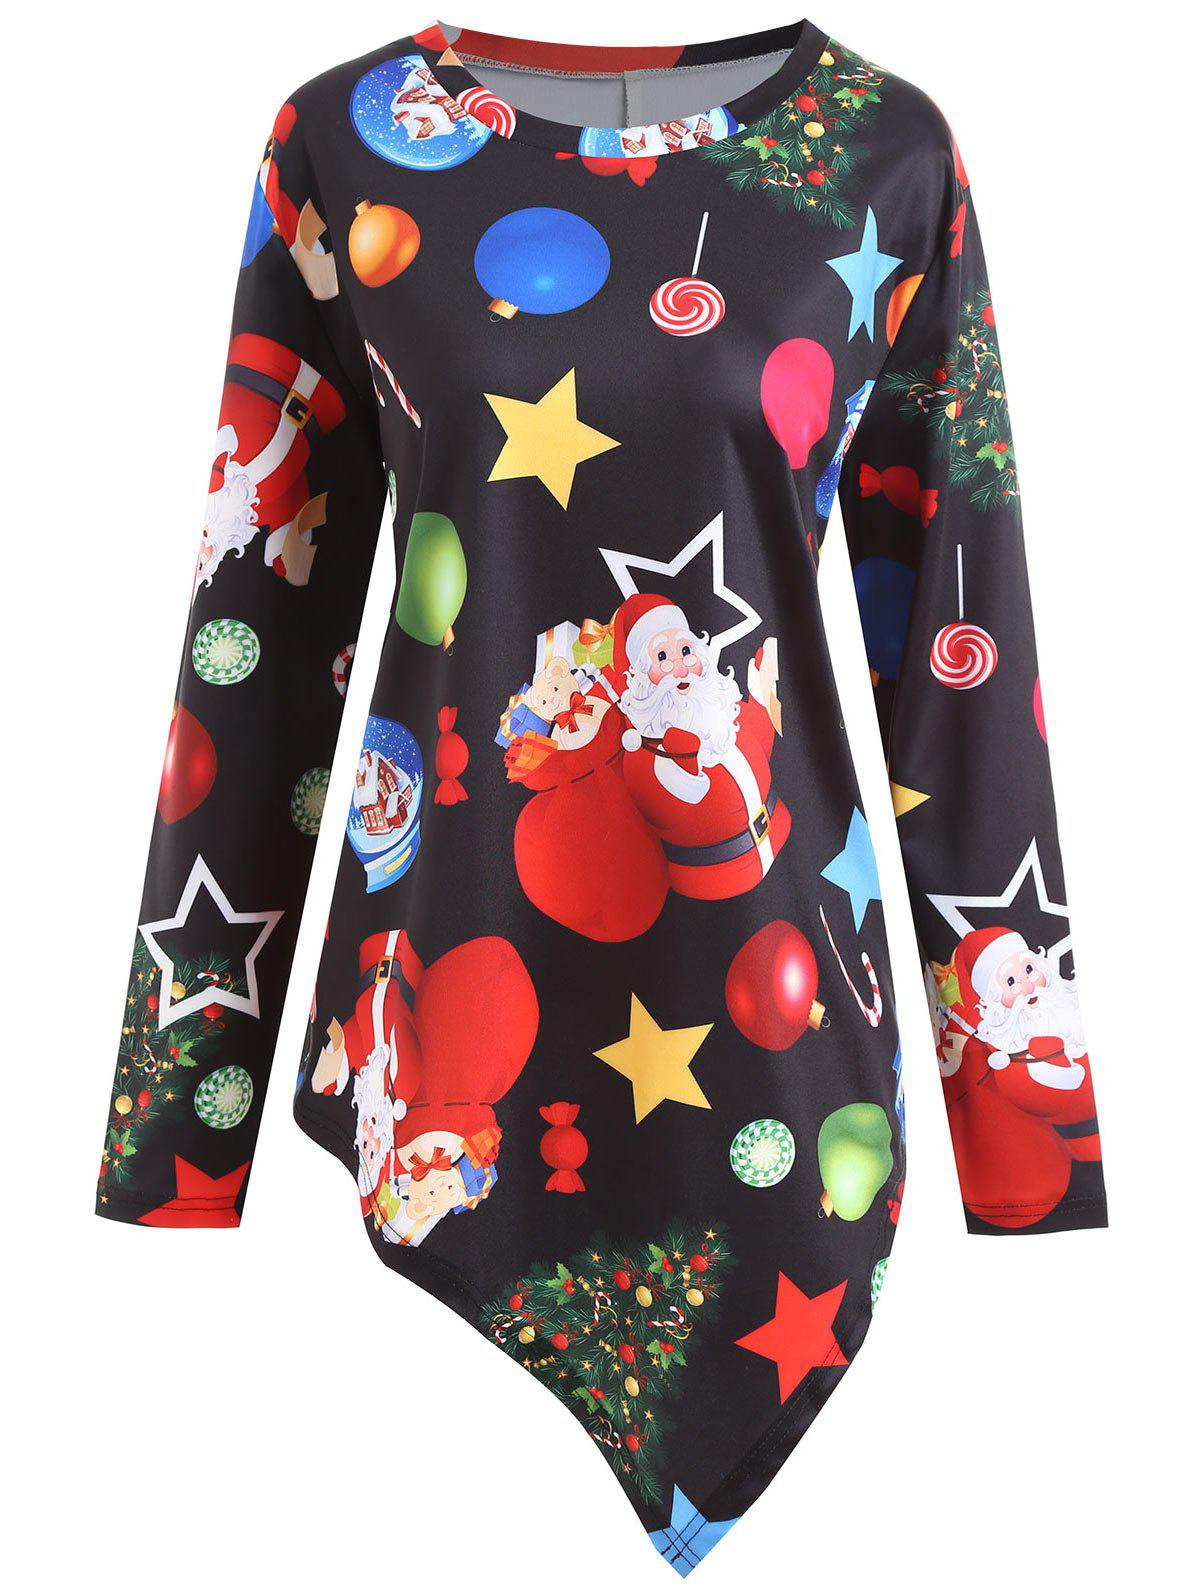 Christmas Santa Claus Star Plus Size Asymmetrical T-shirtWOMEN<br><br>Size: 4XL; Color: BLACK; Material: Polyester,Spandex; Shirt Length: Regular; Sleeve Length: Full; Collar: Round Neck; Style: Casual; Season: Fall,Spring,Winter; Pattern Type: Print; Weight: 0.2900kg; Package Contents: 1 x T-shirt;